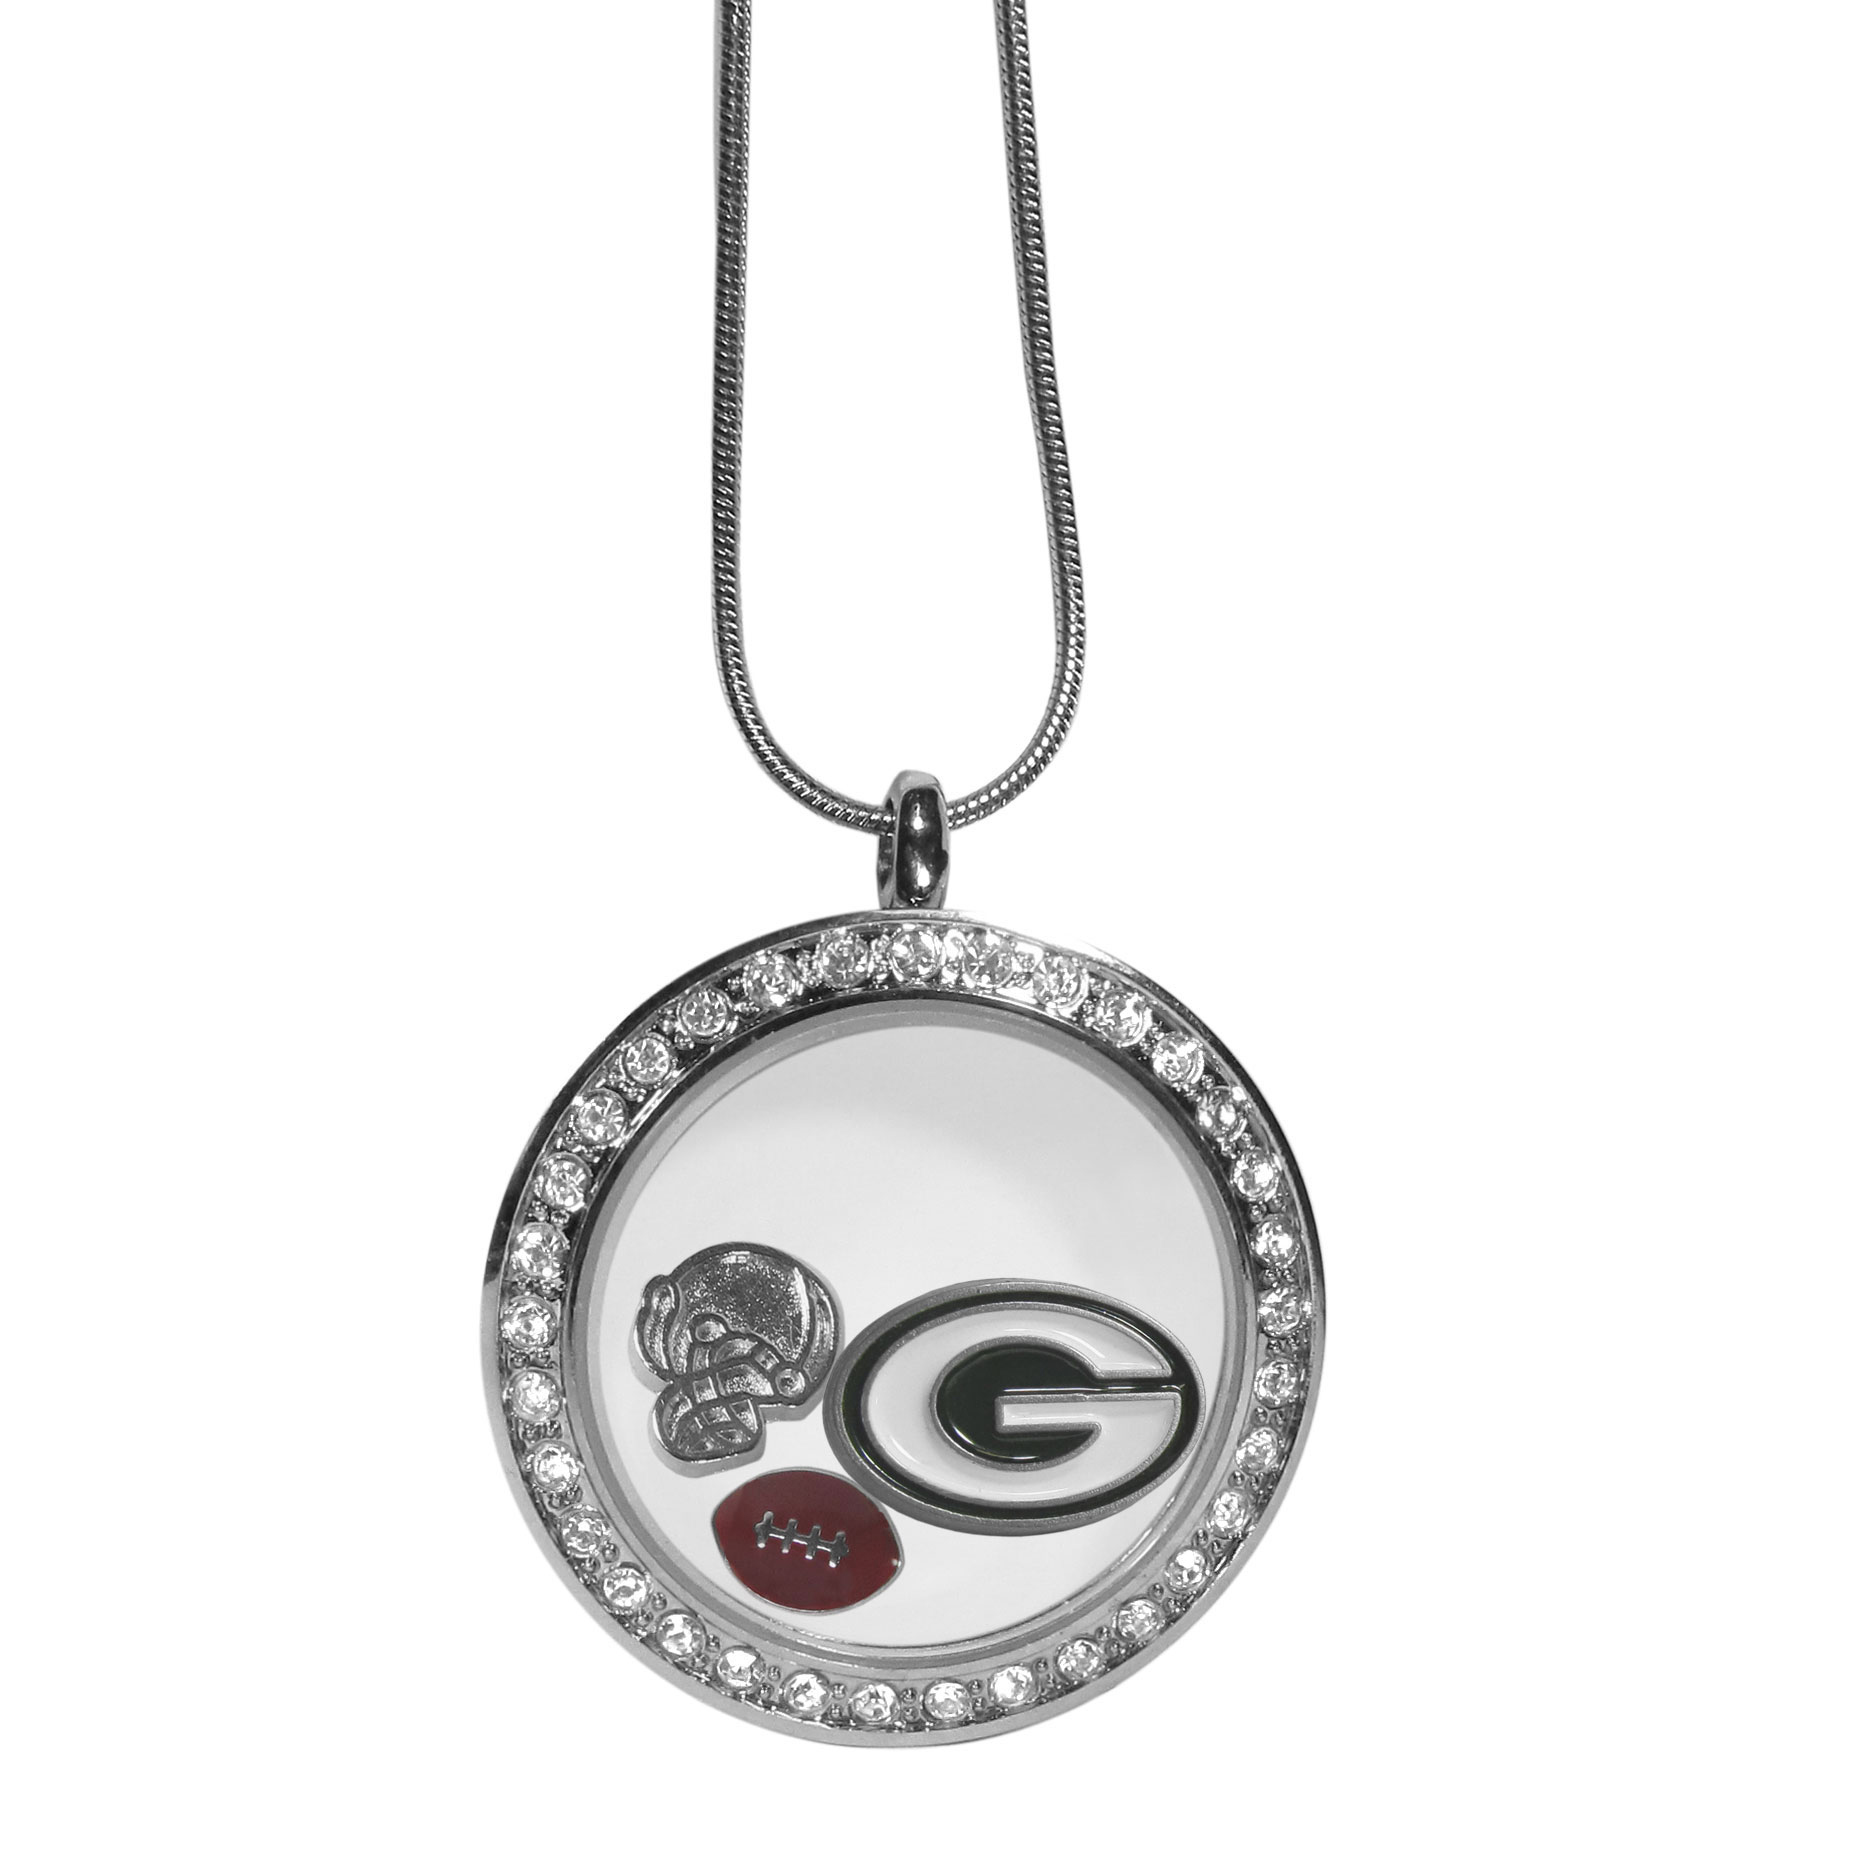 Green Bay Packers Locket Necklace - We have taken the classic floating charm locket and combined with licensed sports charms to create a must have fan necklace. The necklace comes with 3 charms; 1 Green Bay Packers charm, one football charm and one helmet charm. The charms float in a beautiful locket that has a strong magnetic closure with a rhinestone border. The locket comes on an 18 inch snake chain with 2 inch extender.